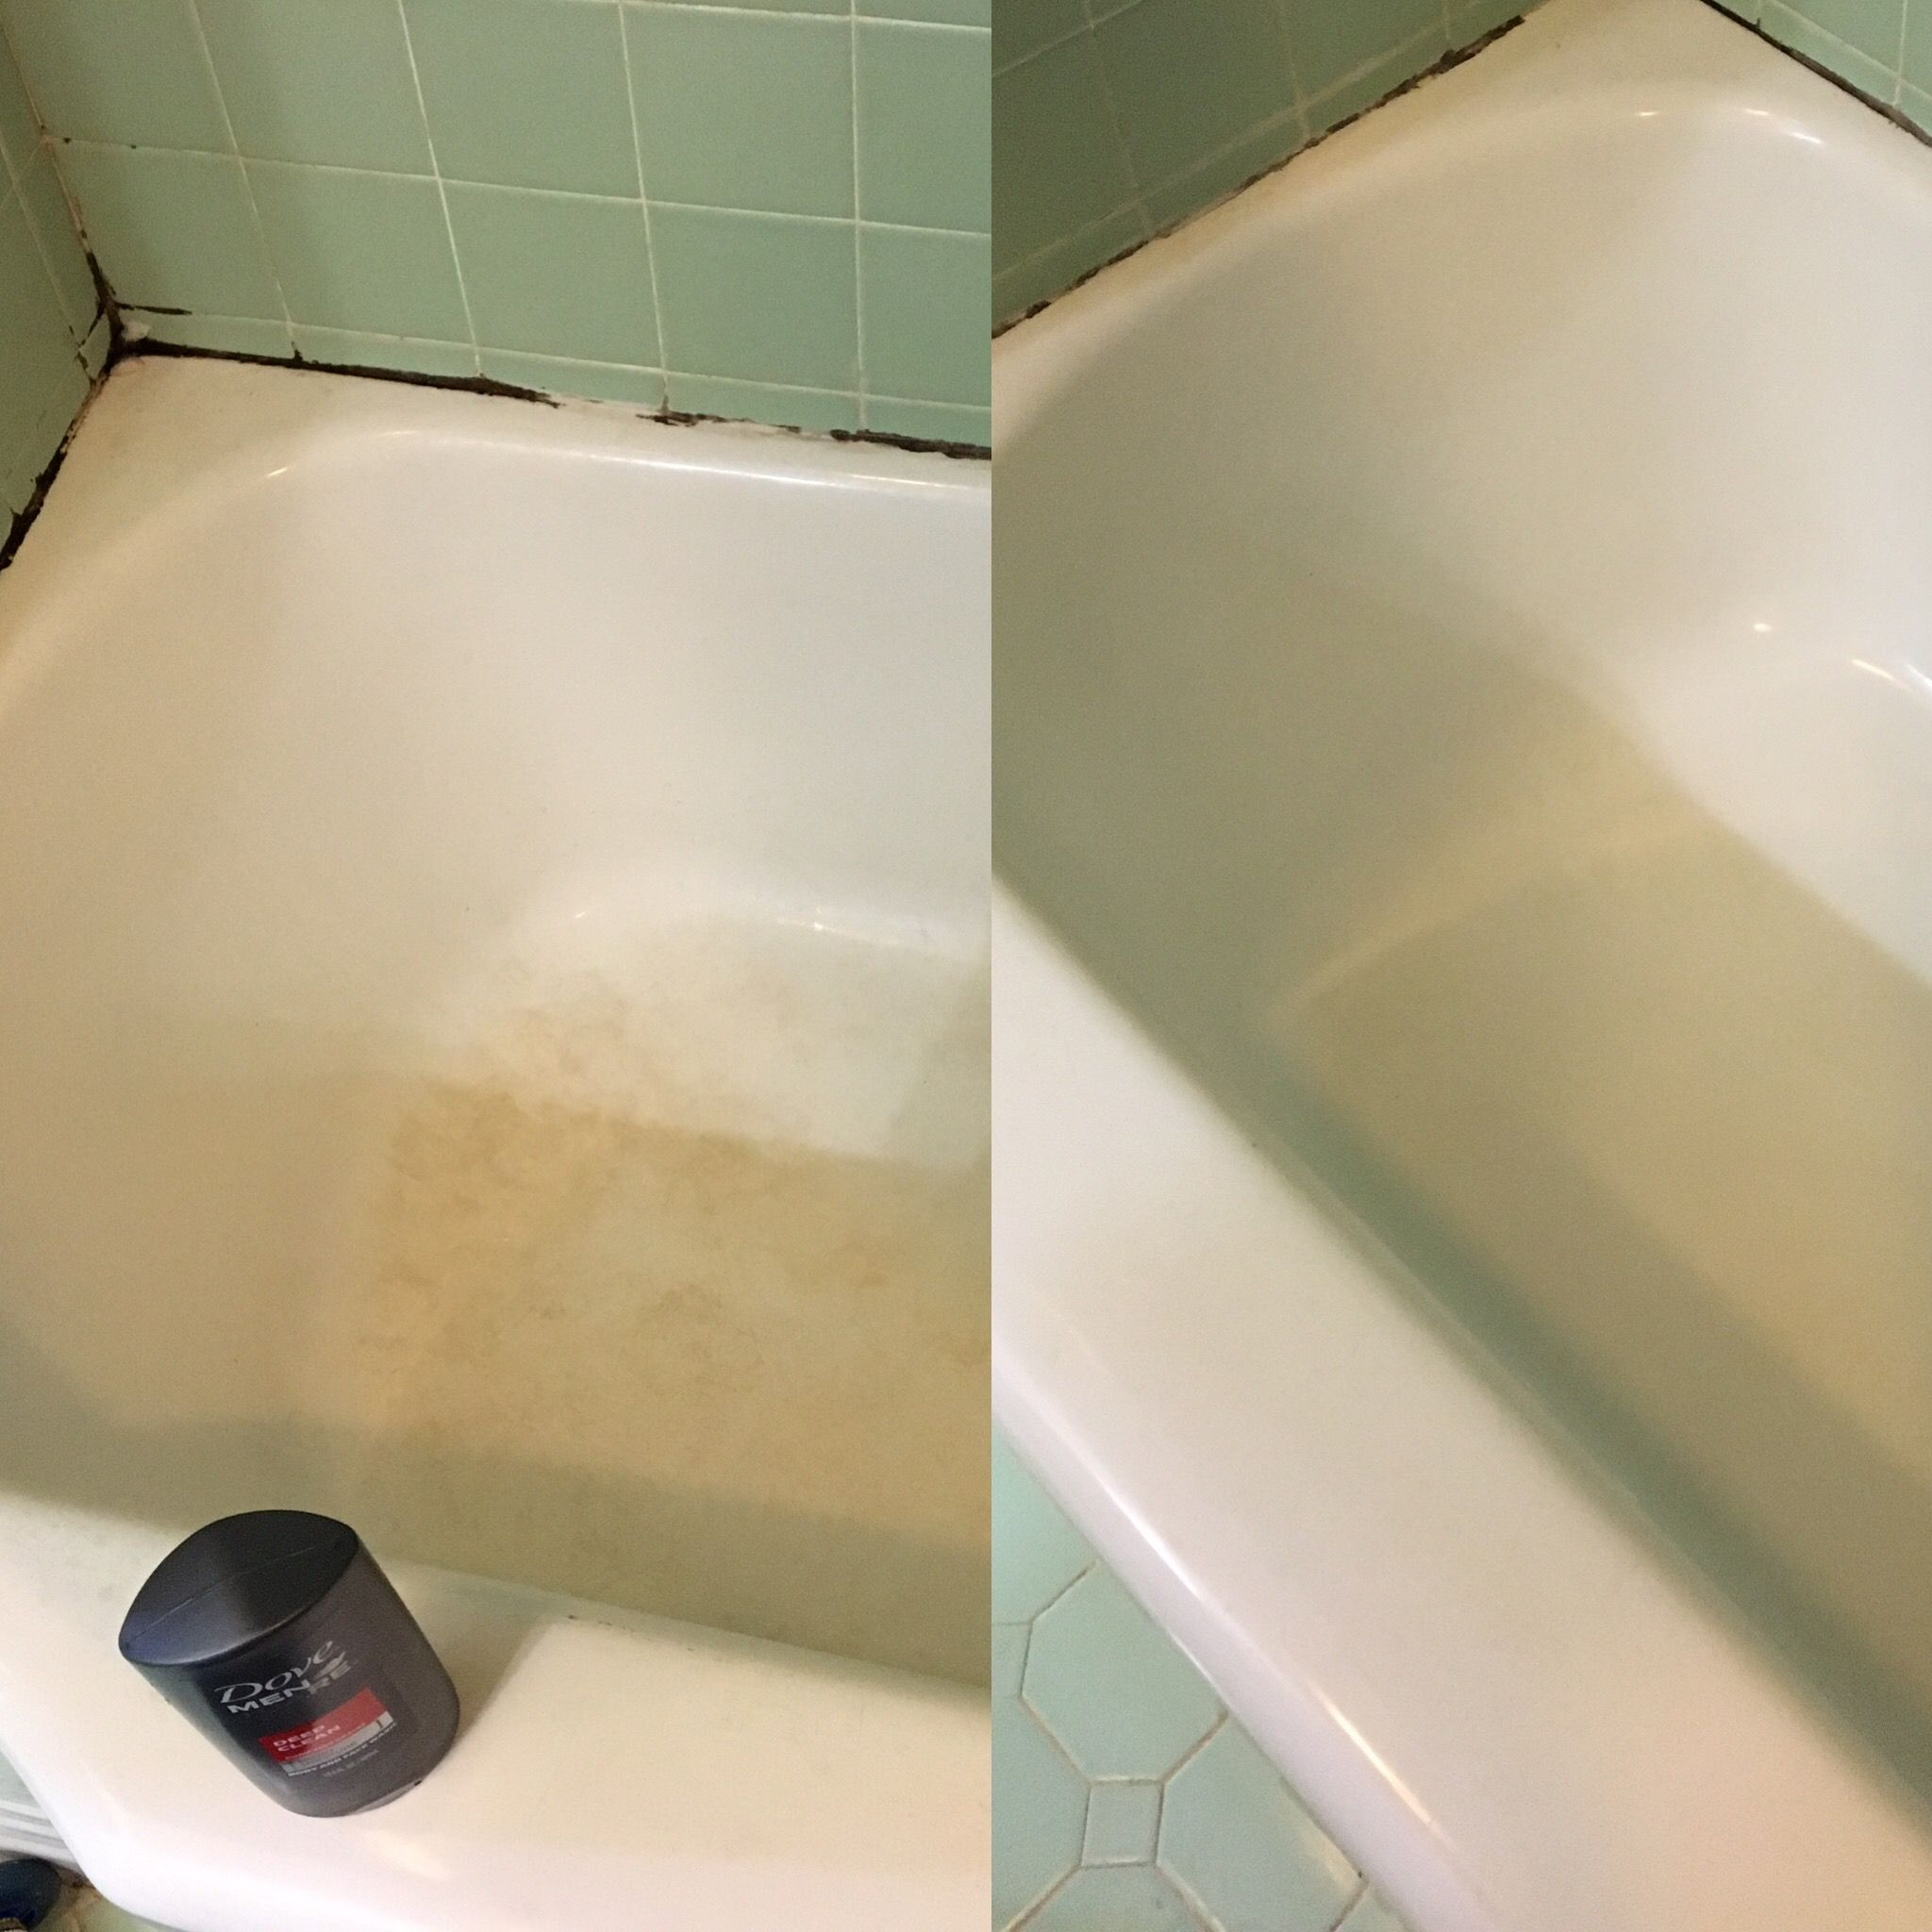 1950s porcelain tub Grout cleaned w barkeepers friend and grout